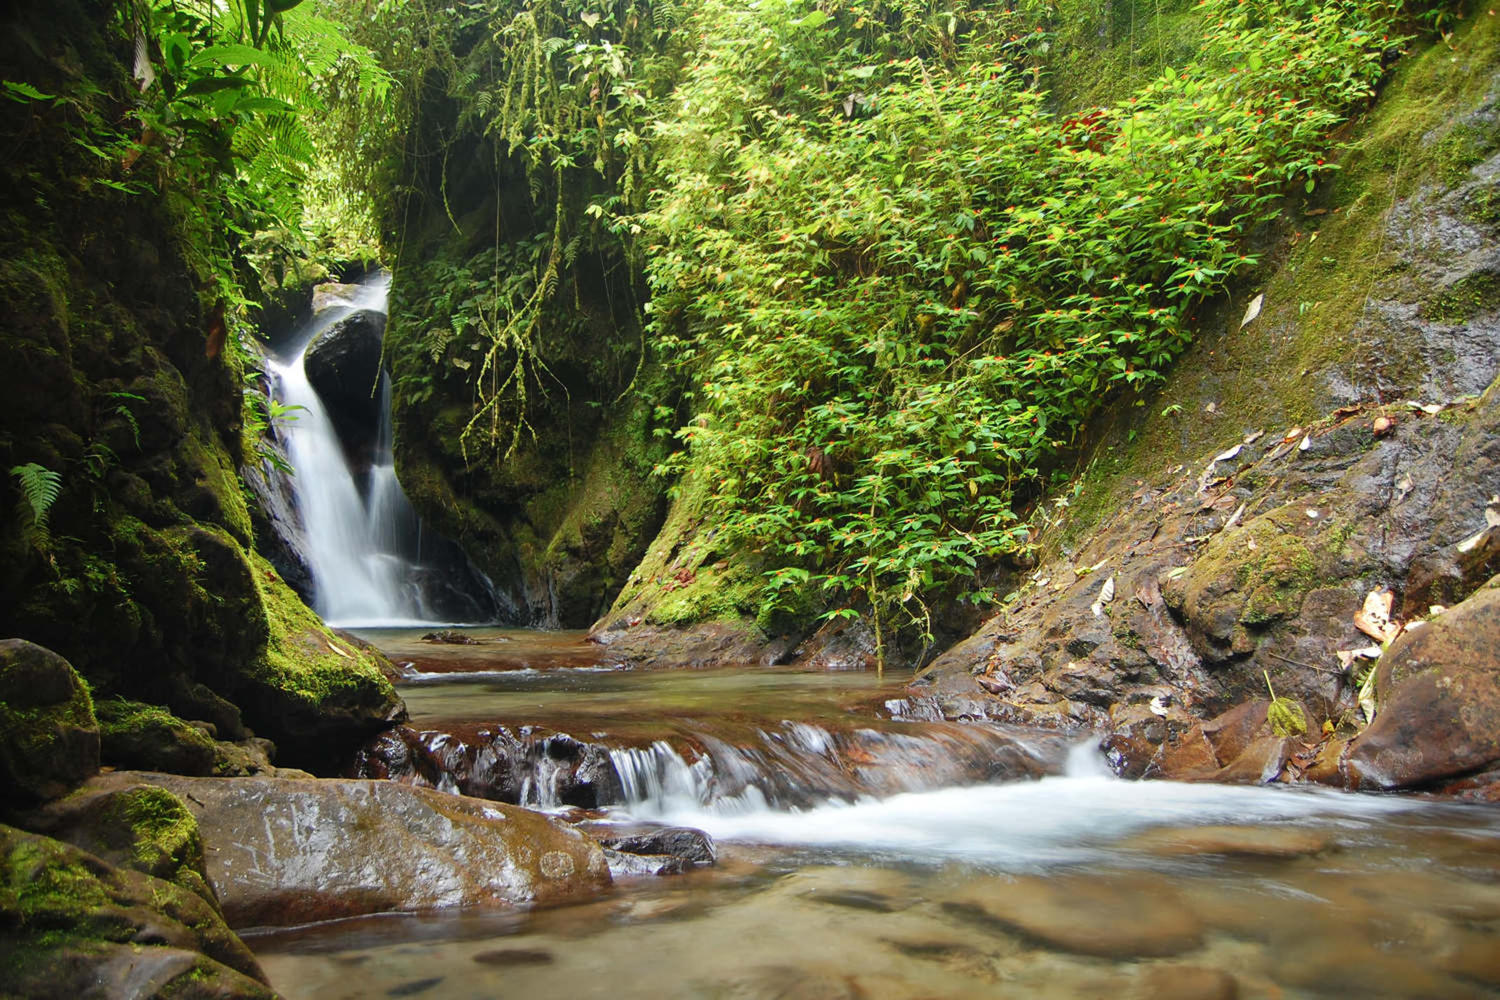 Natural spring waterfall in Ecuador's cloud forest